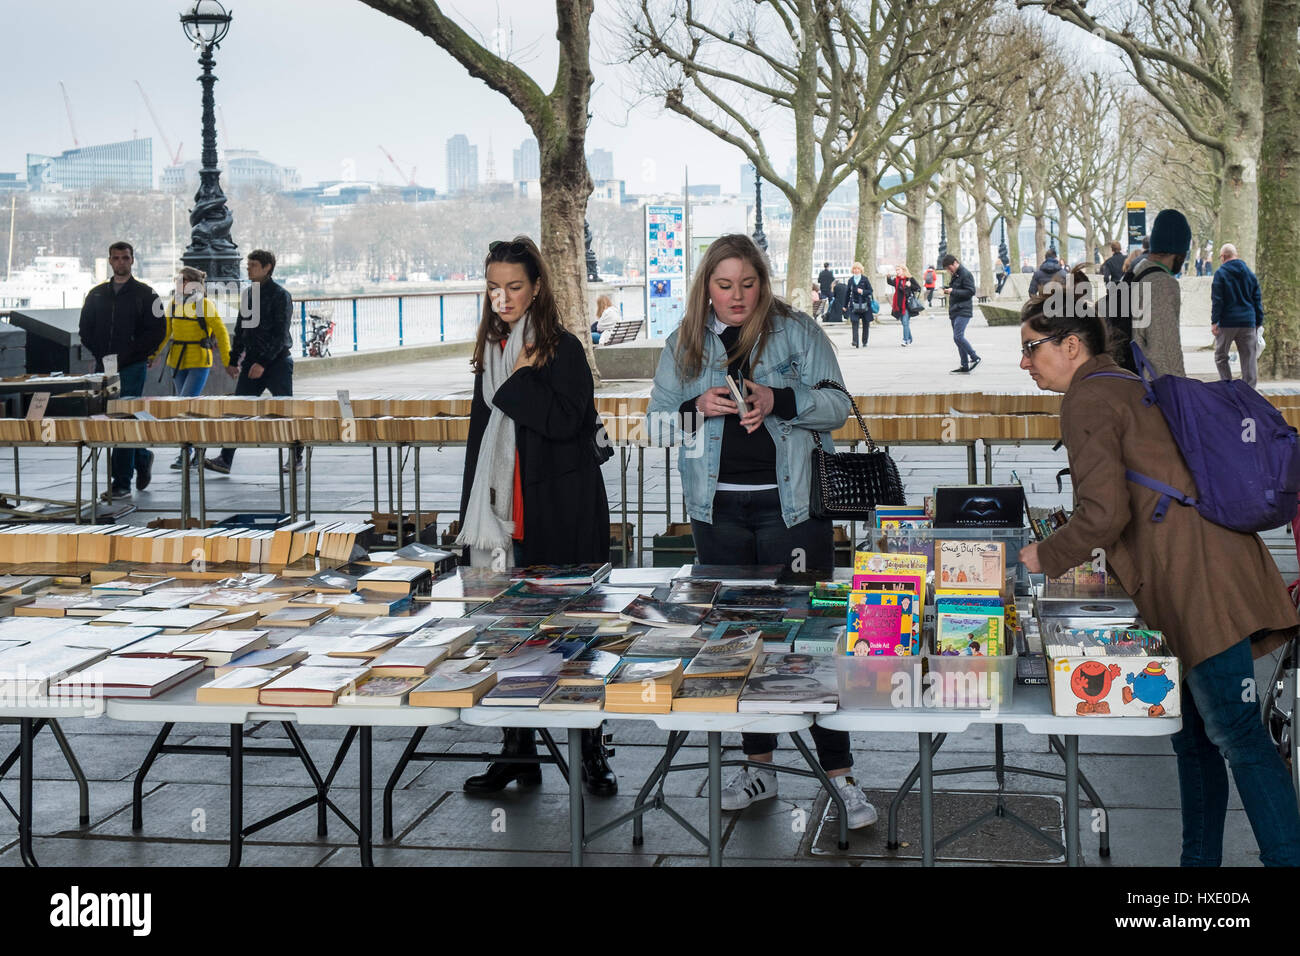 Southbank Centre Book Market Second-hand Books Customers Browsers Browsing London - Stock Image